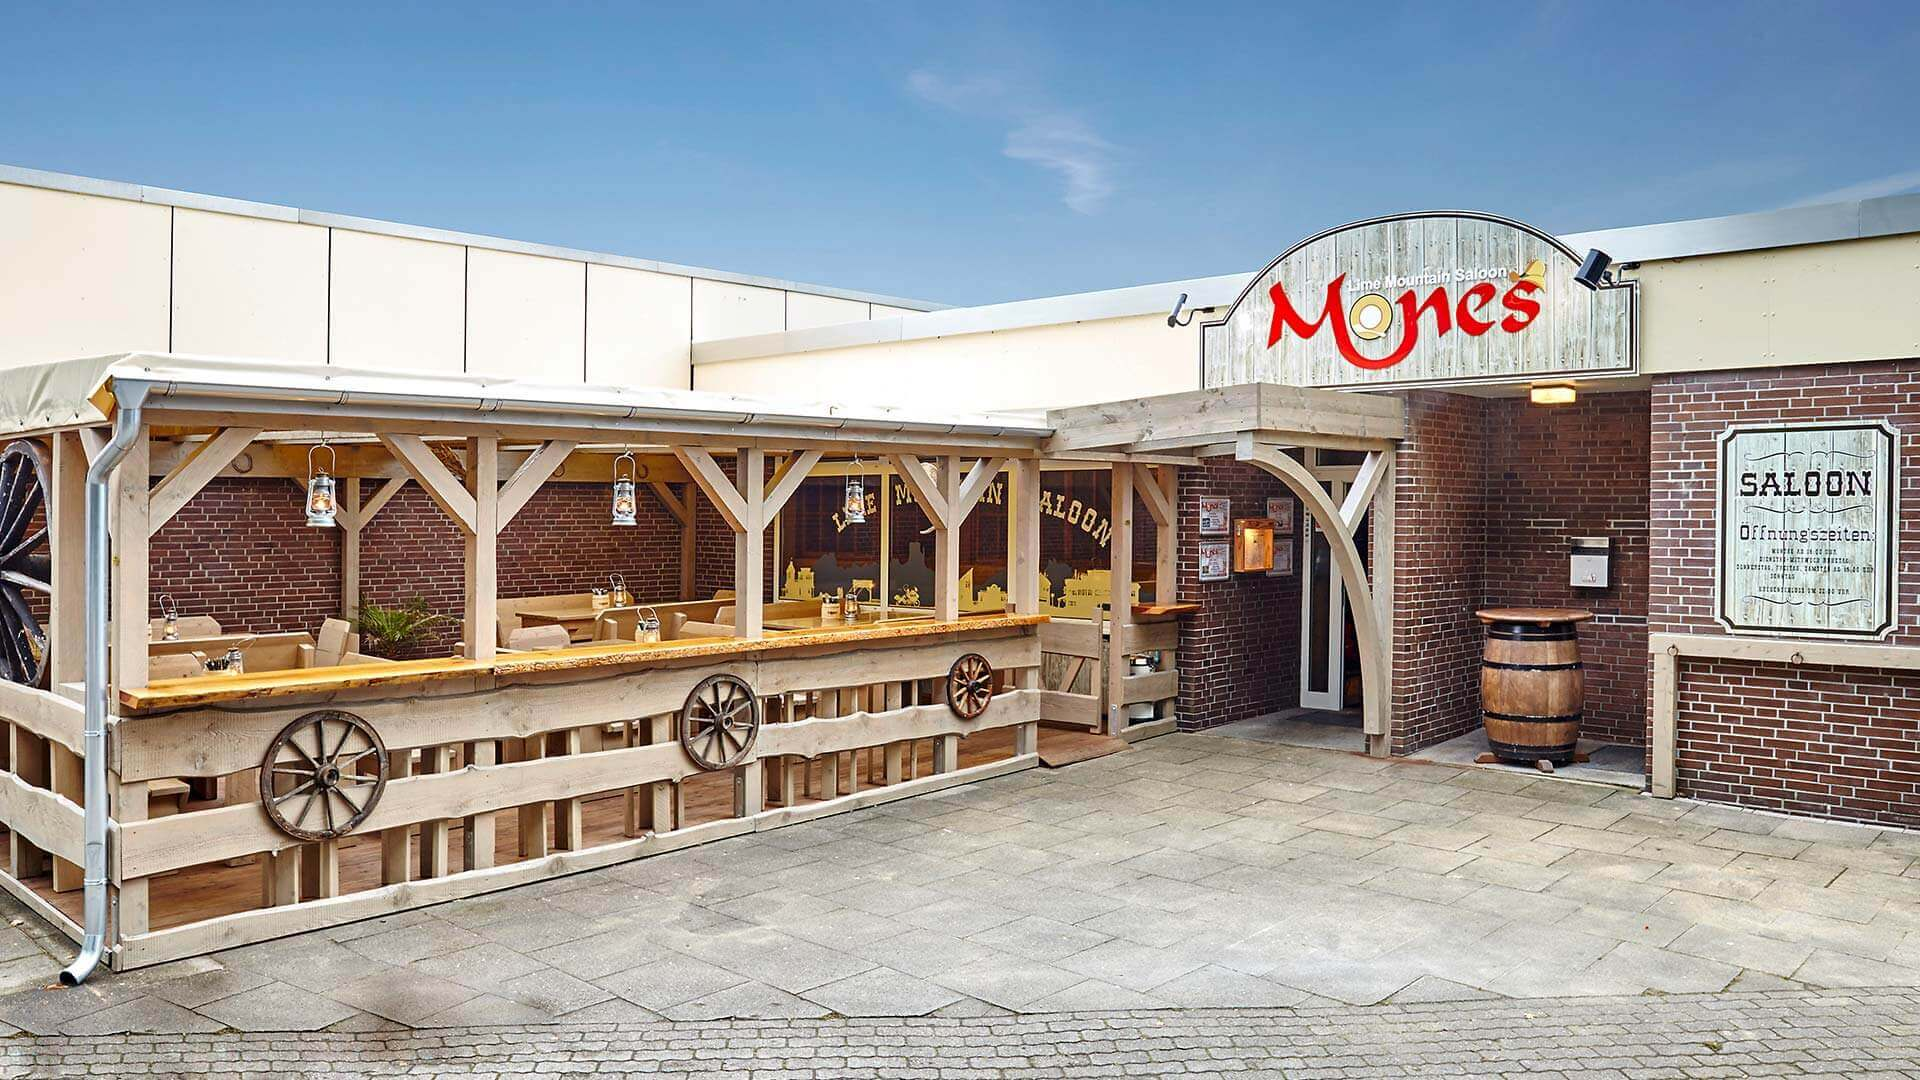 Mones - Restaurant in Bad Segeberg